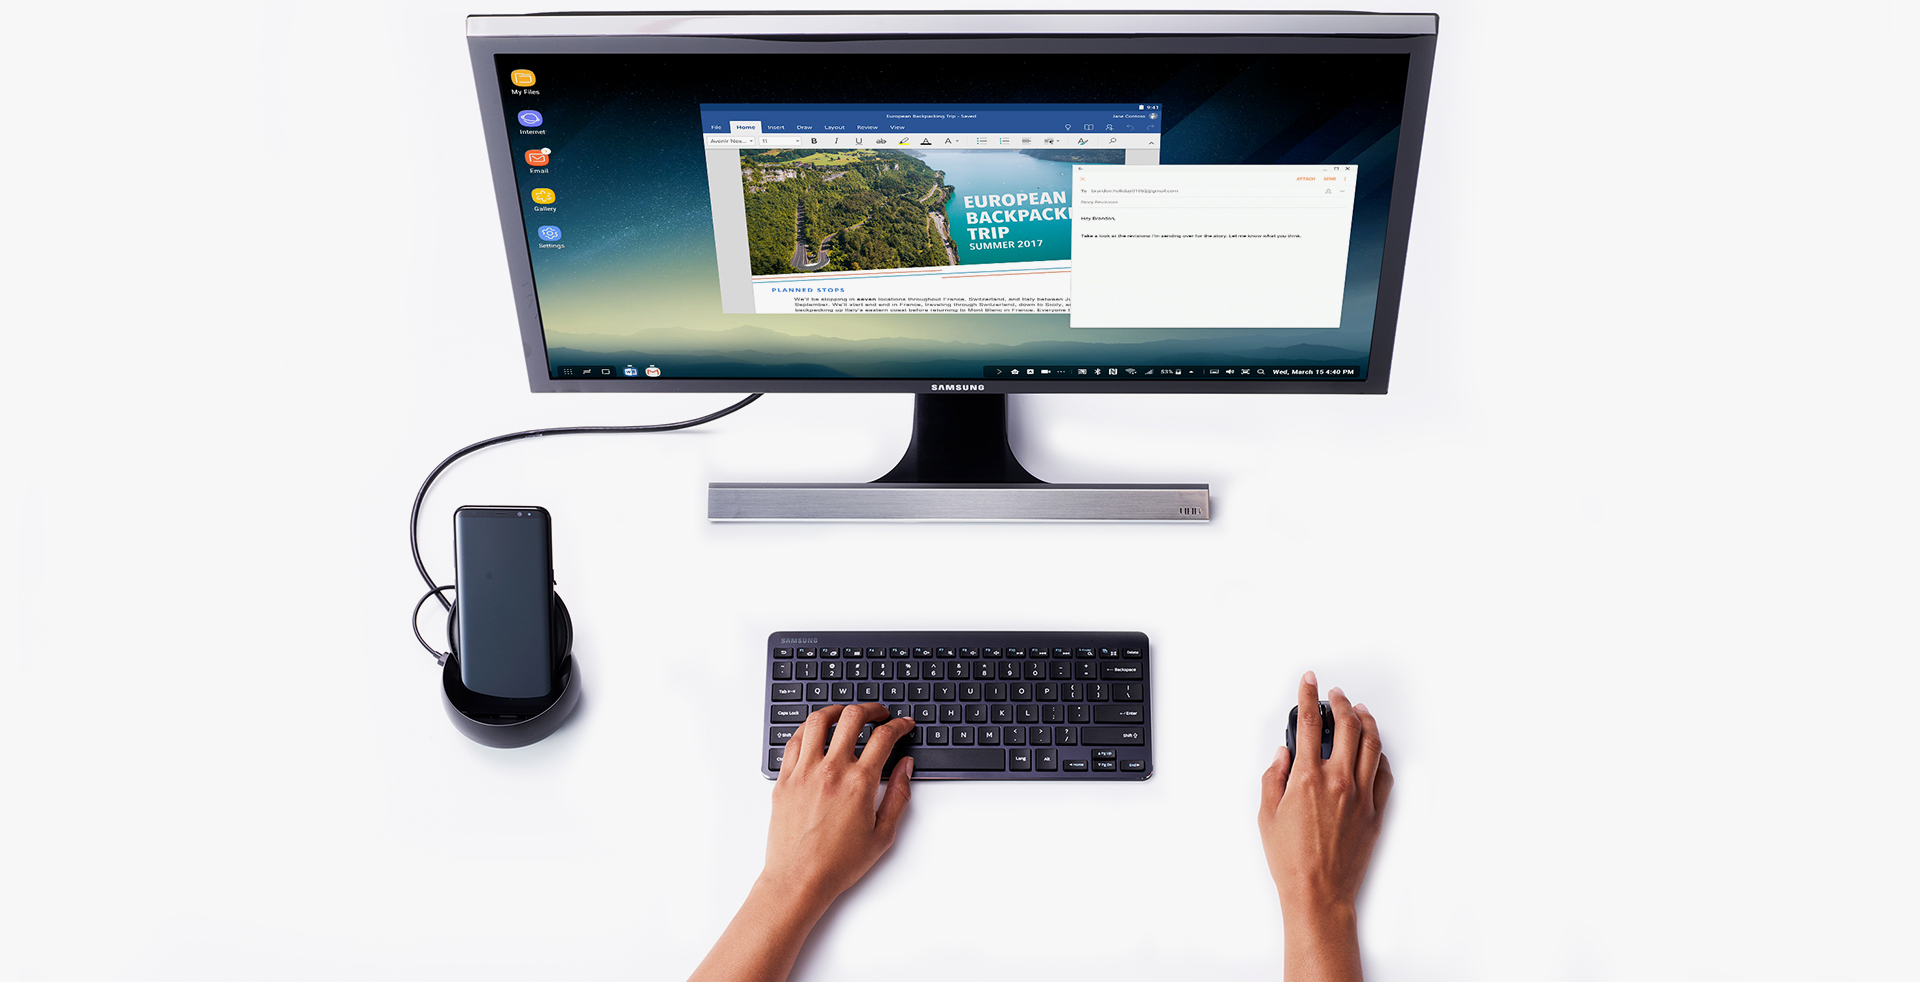 Image of using keyboard and mouse, in front of monitor and Galaxy S8 Black connected to Samsung DeX Station.